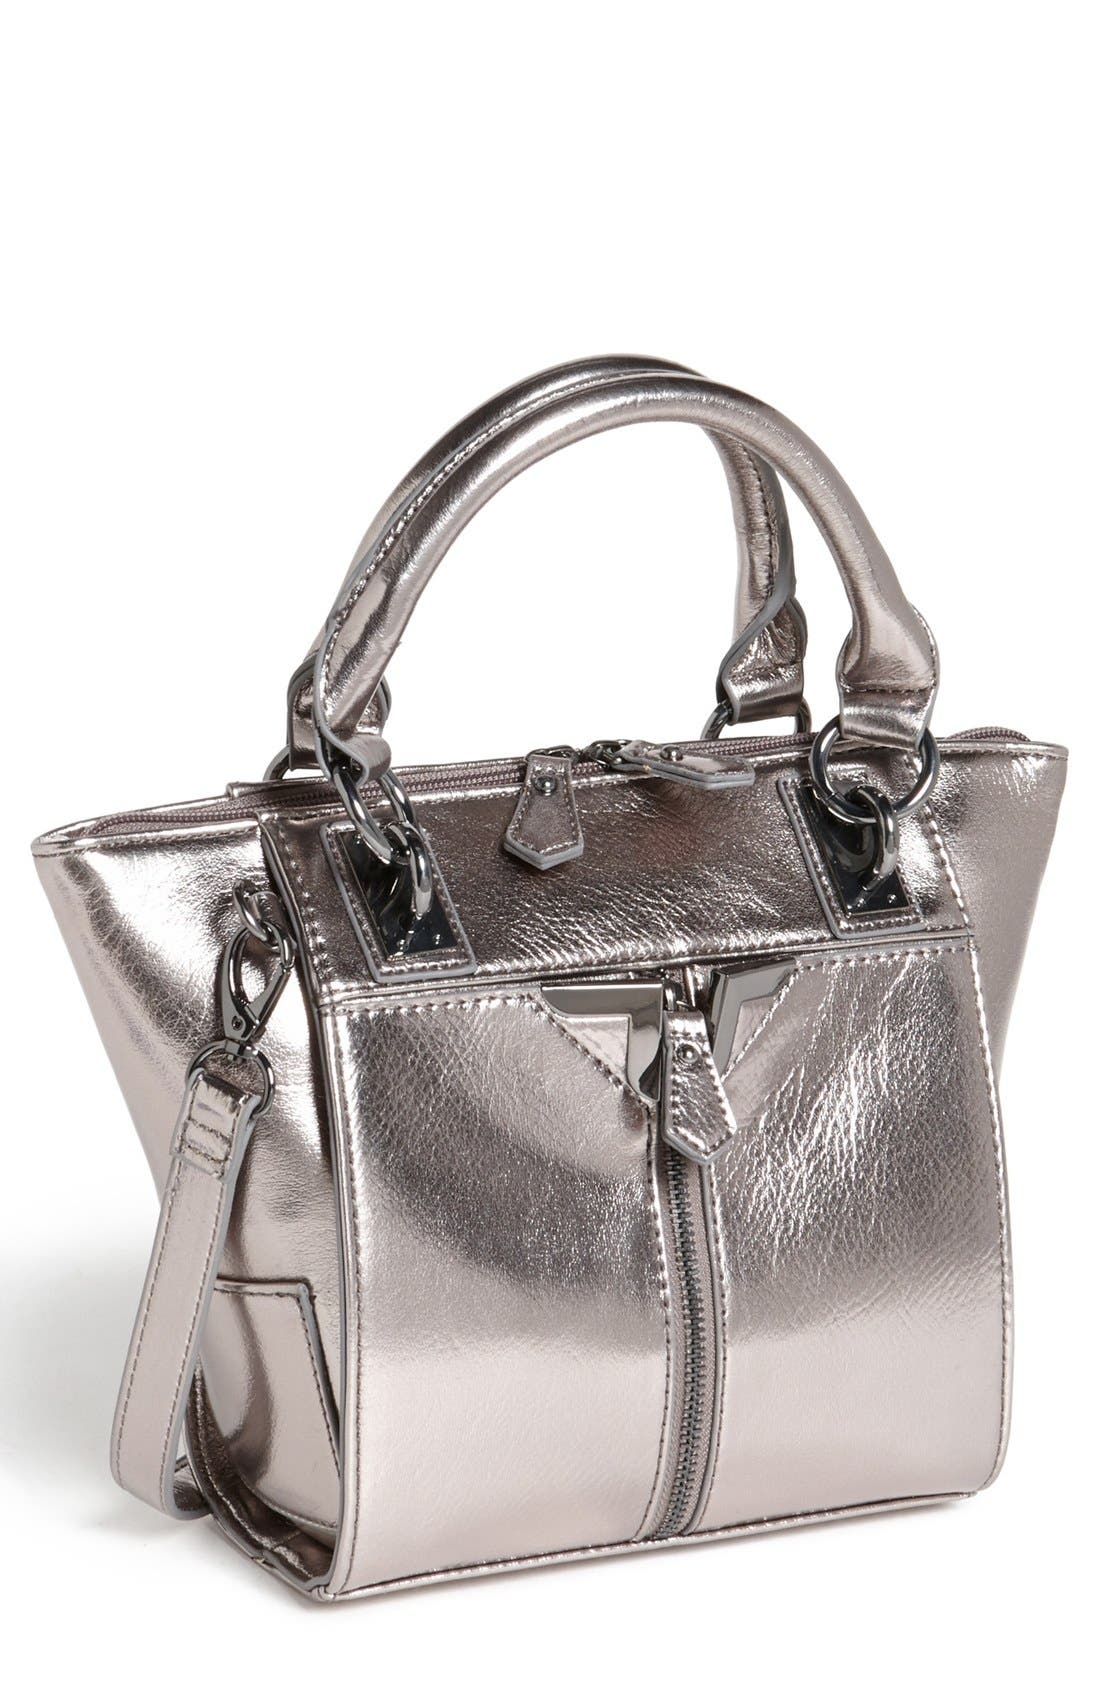 'Alexa - Mini' Crossbody Bag,                             Main thumbnail 1, color,                             Gunmetal